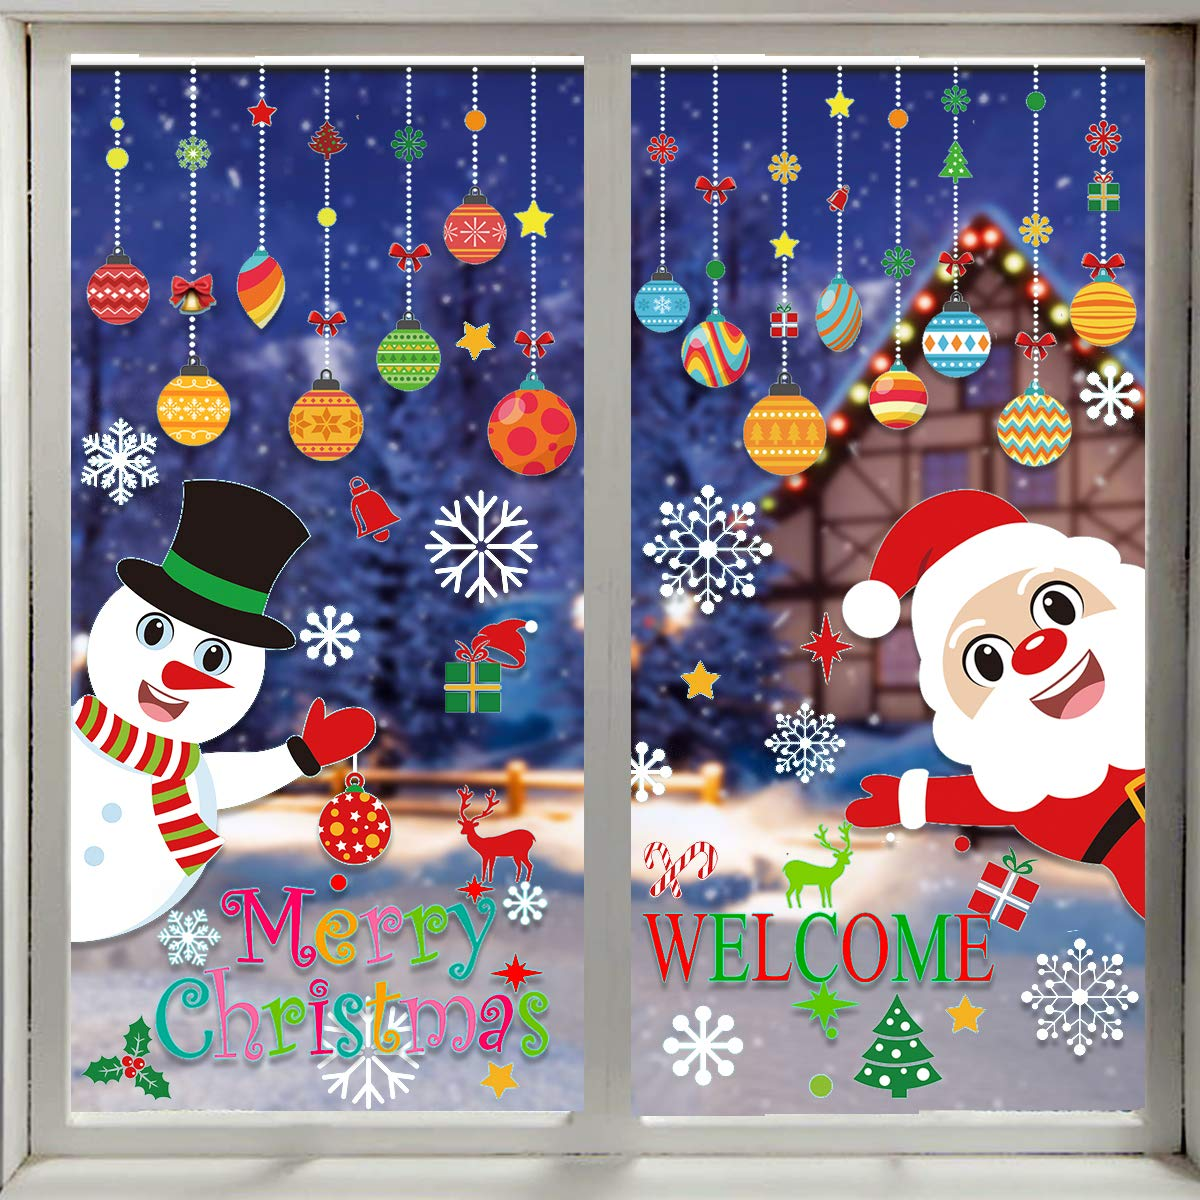 VEYLIN 118 Pieces Christmas Window Clings with Xmas Snowflakes Decals Removable